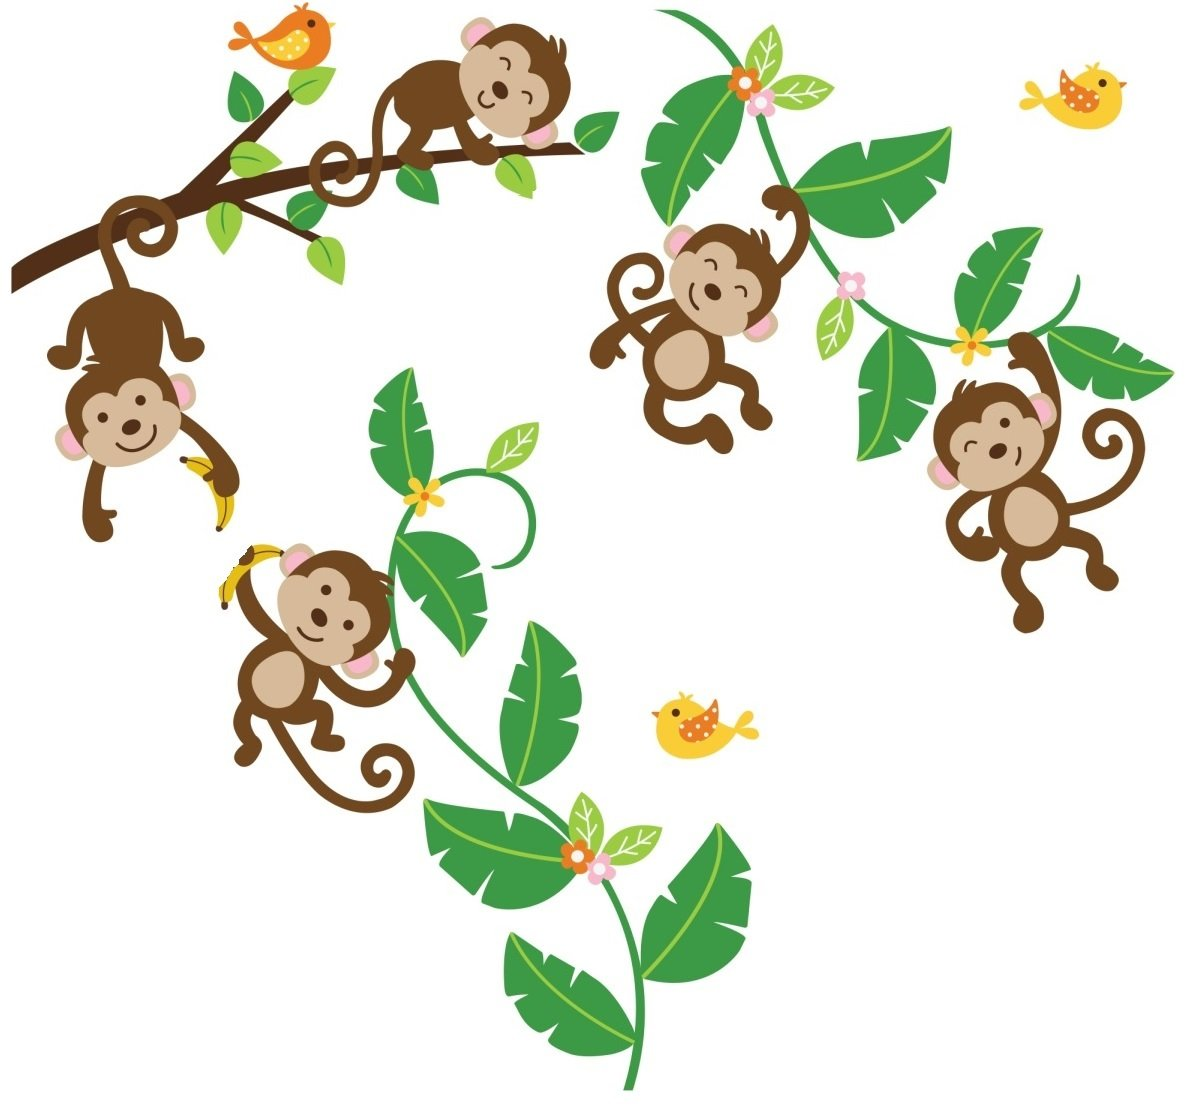 Pictures of monkeys swinging on vines-3241